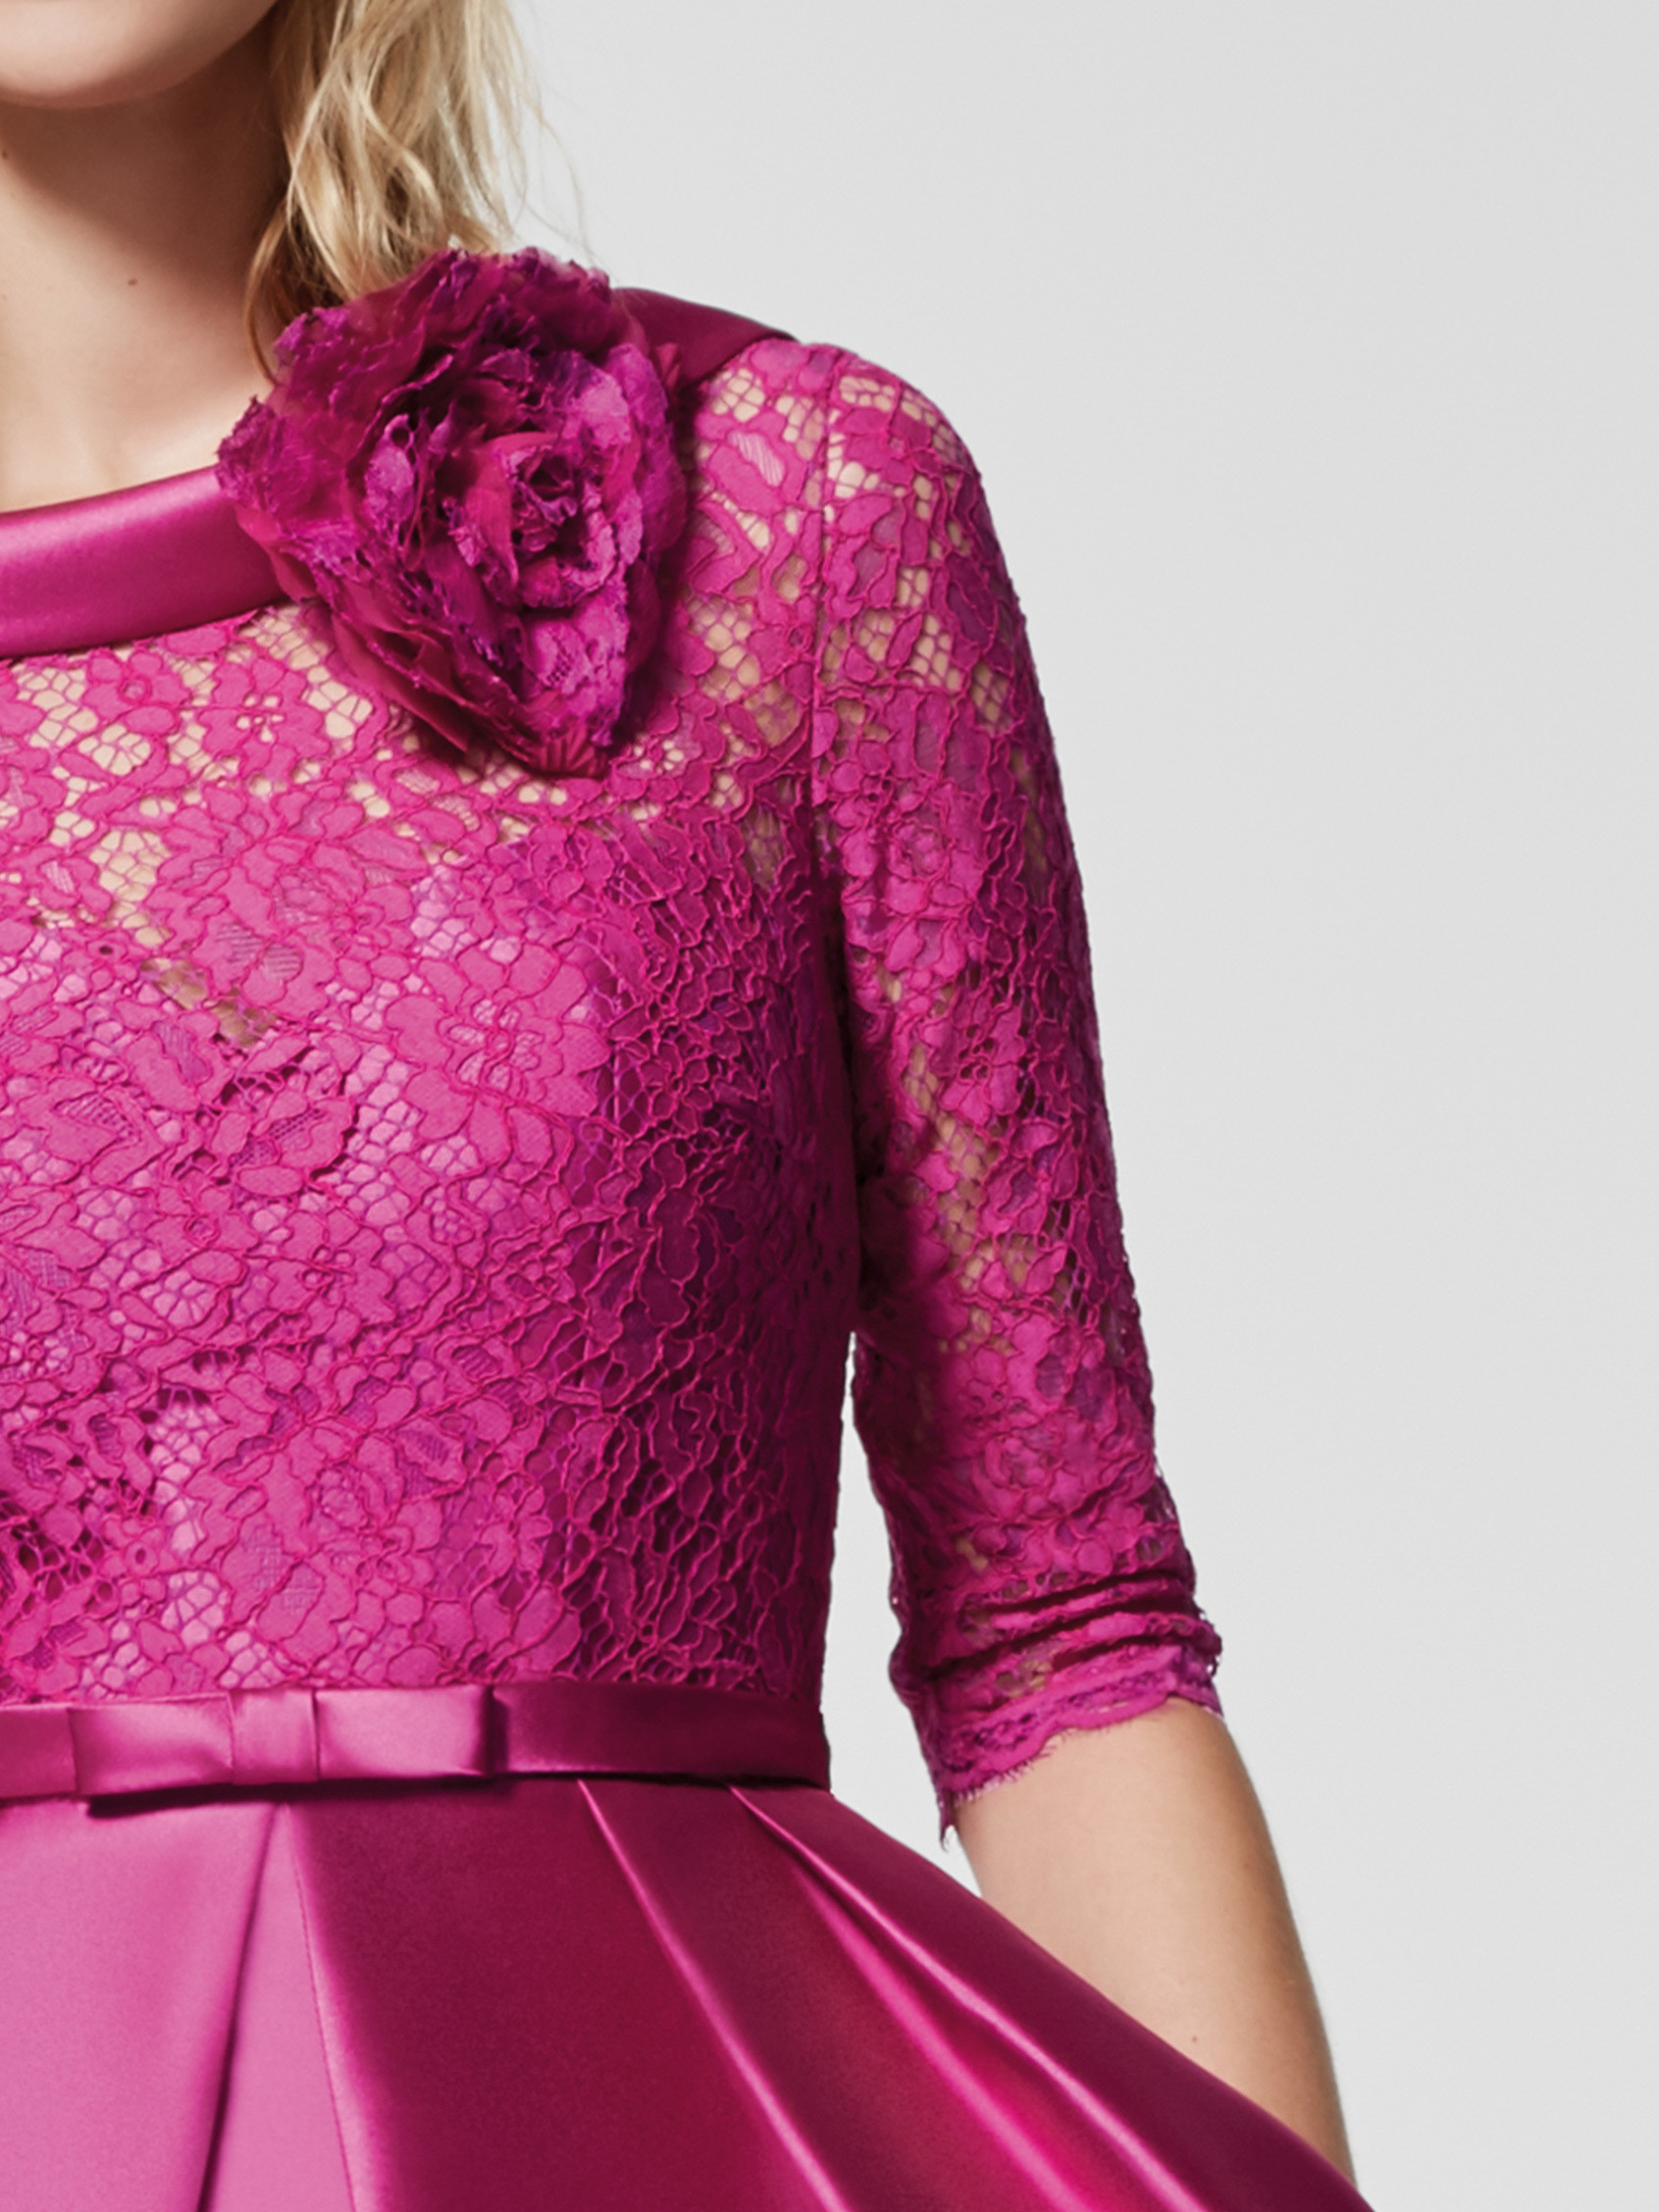 Short Lace Cocktail Dress | Bycouturier